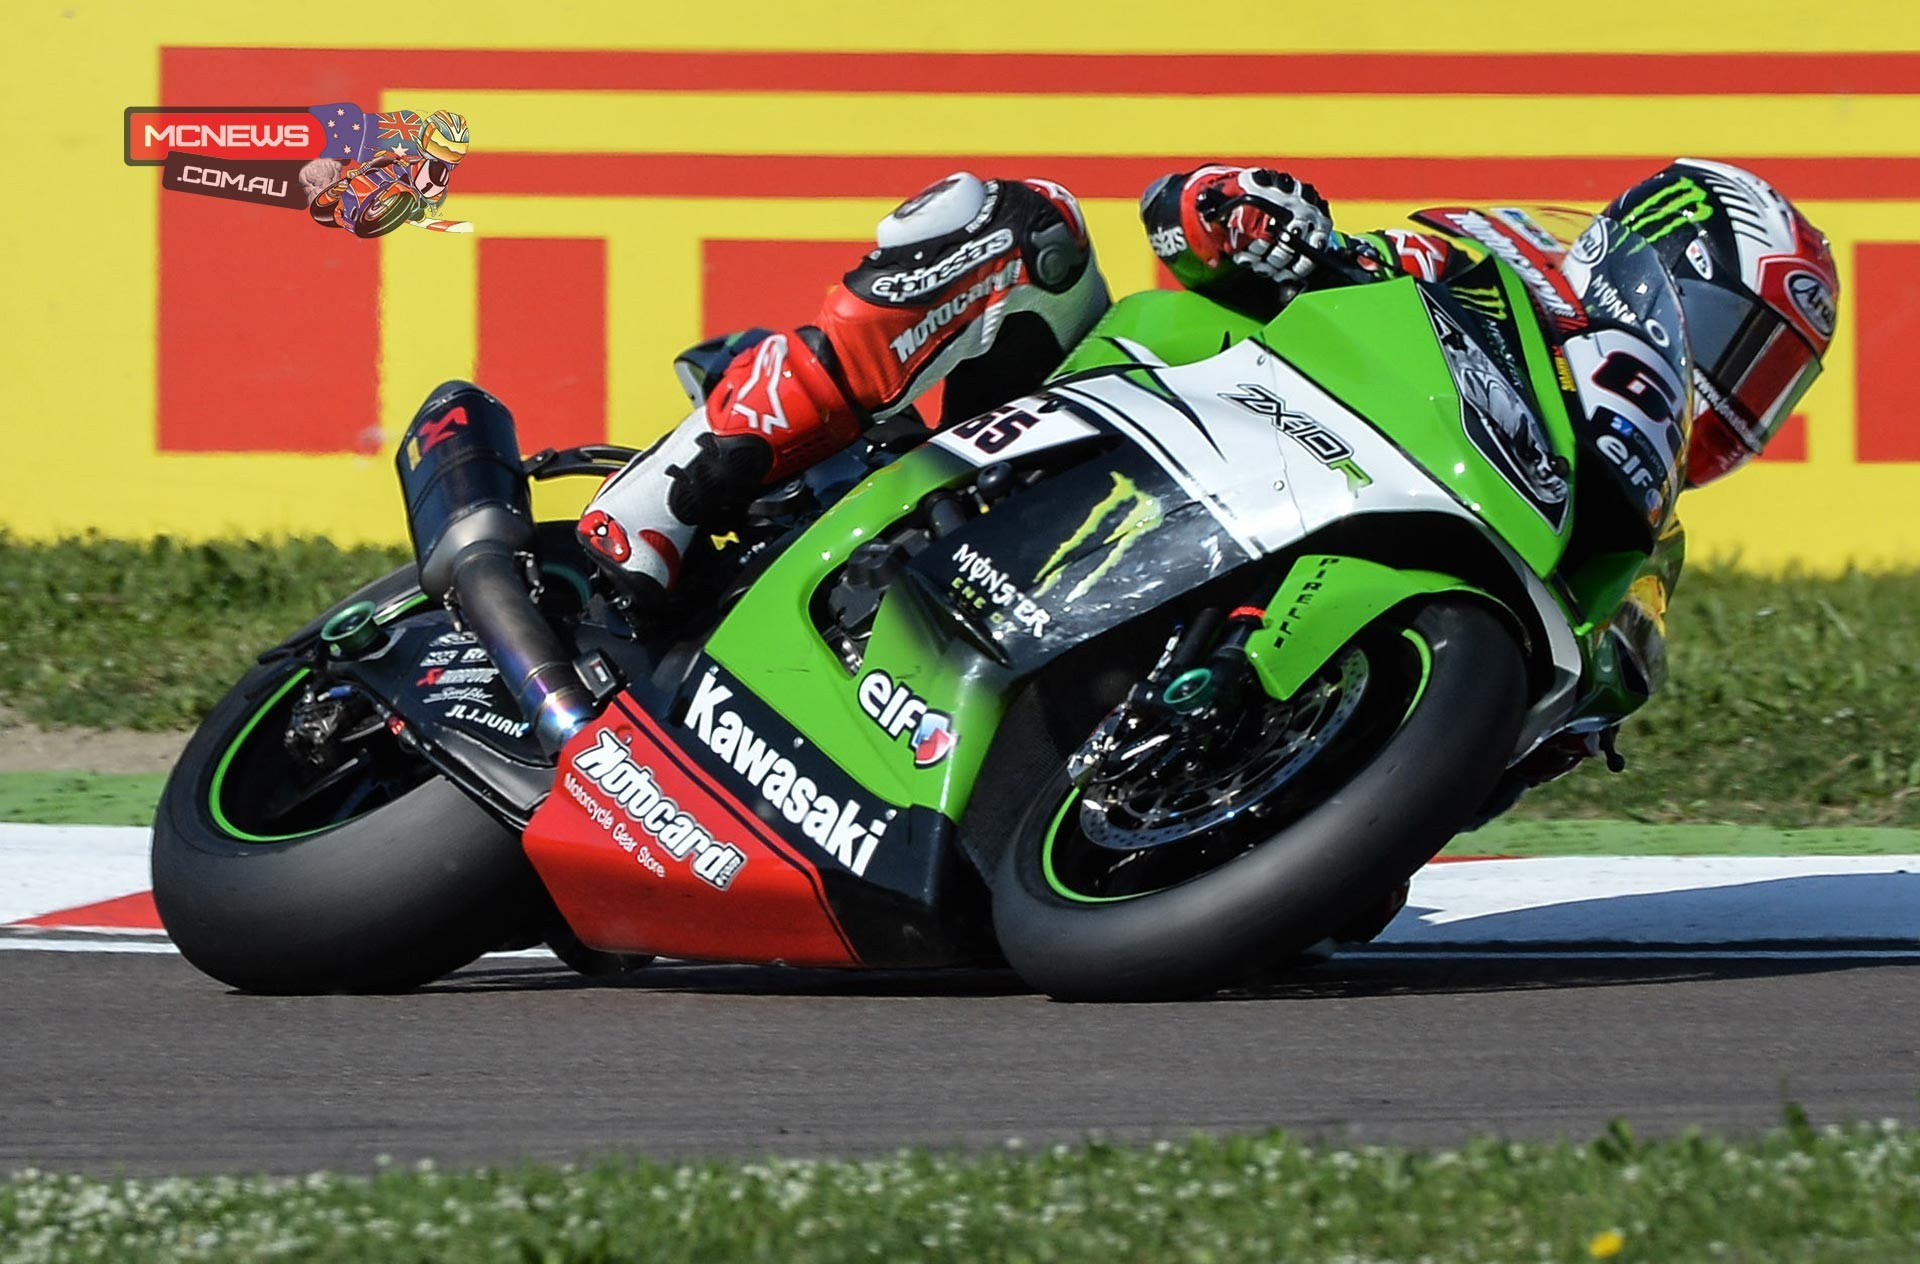 Superbike Hd Wallpaper Full Screen: World Superbike Wallpaper (73+ Images